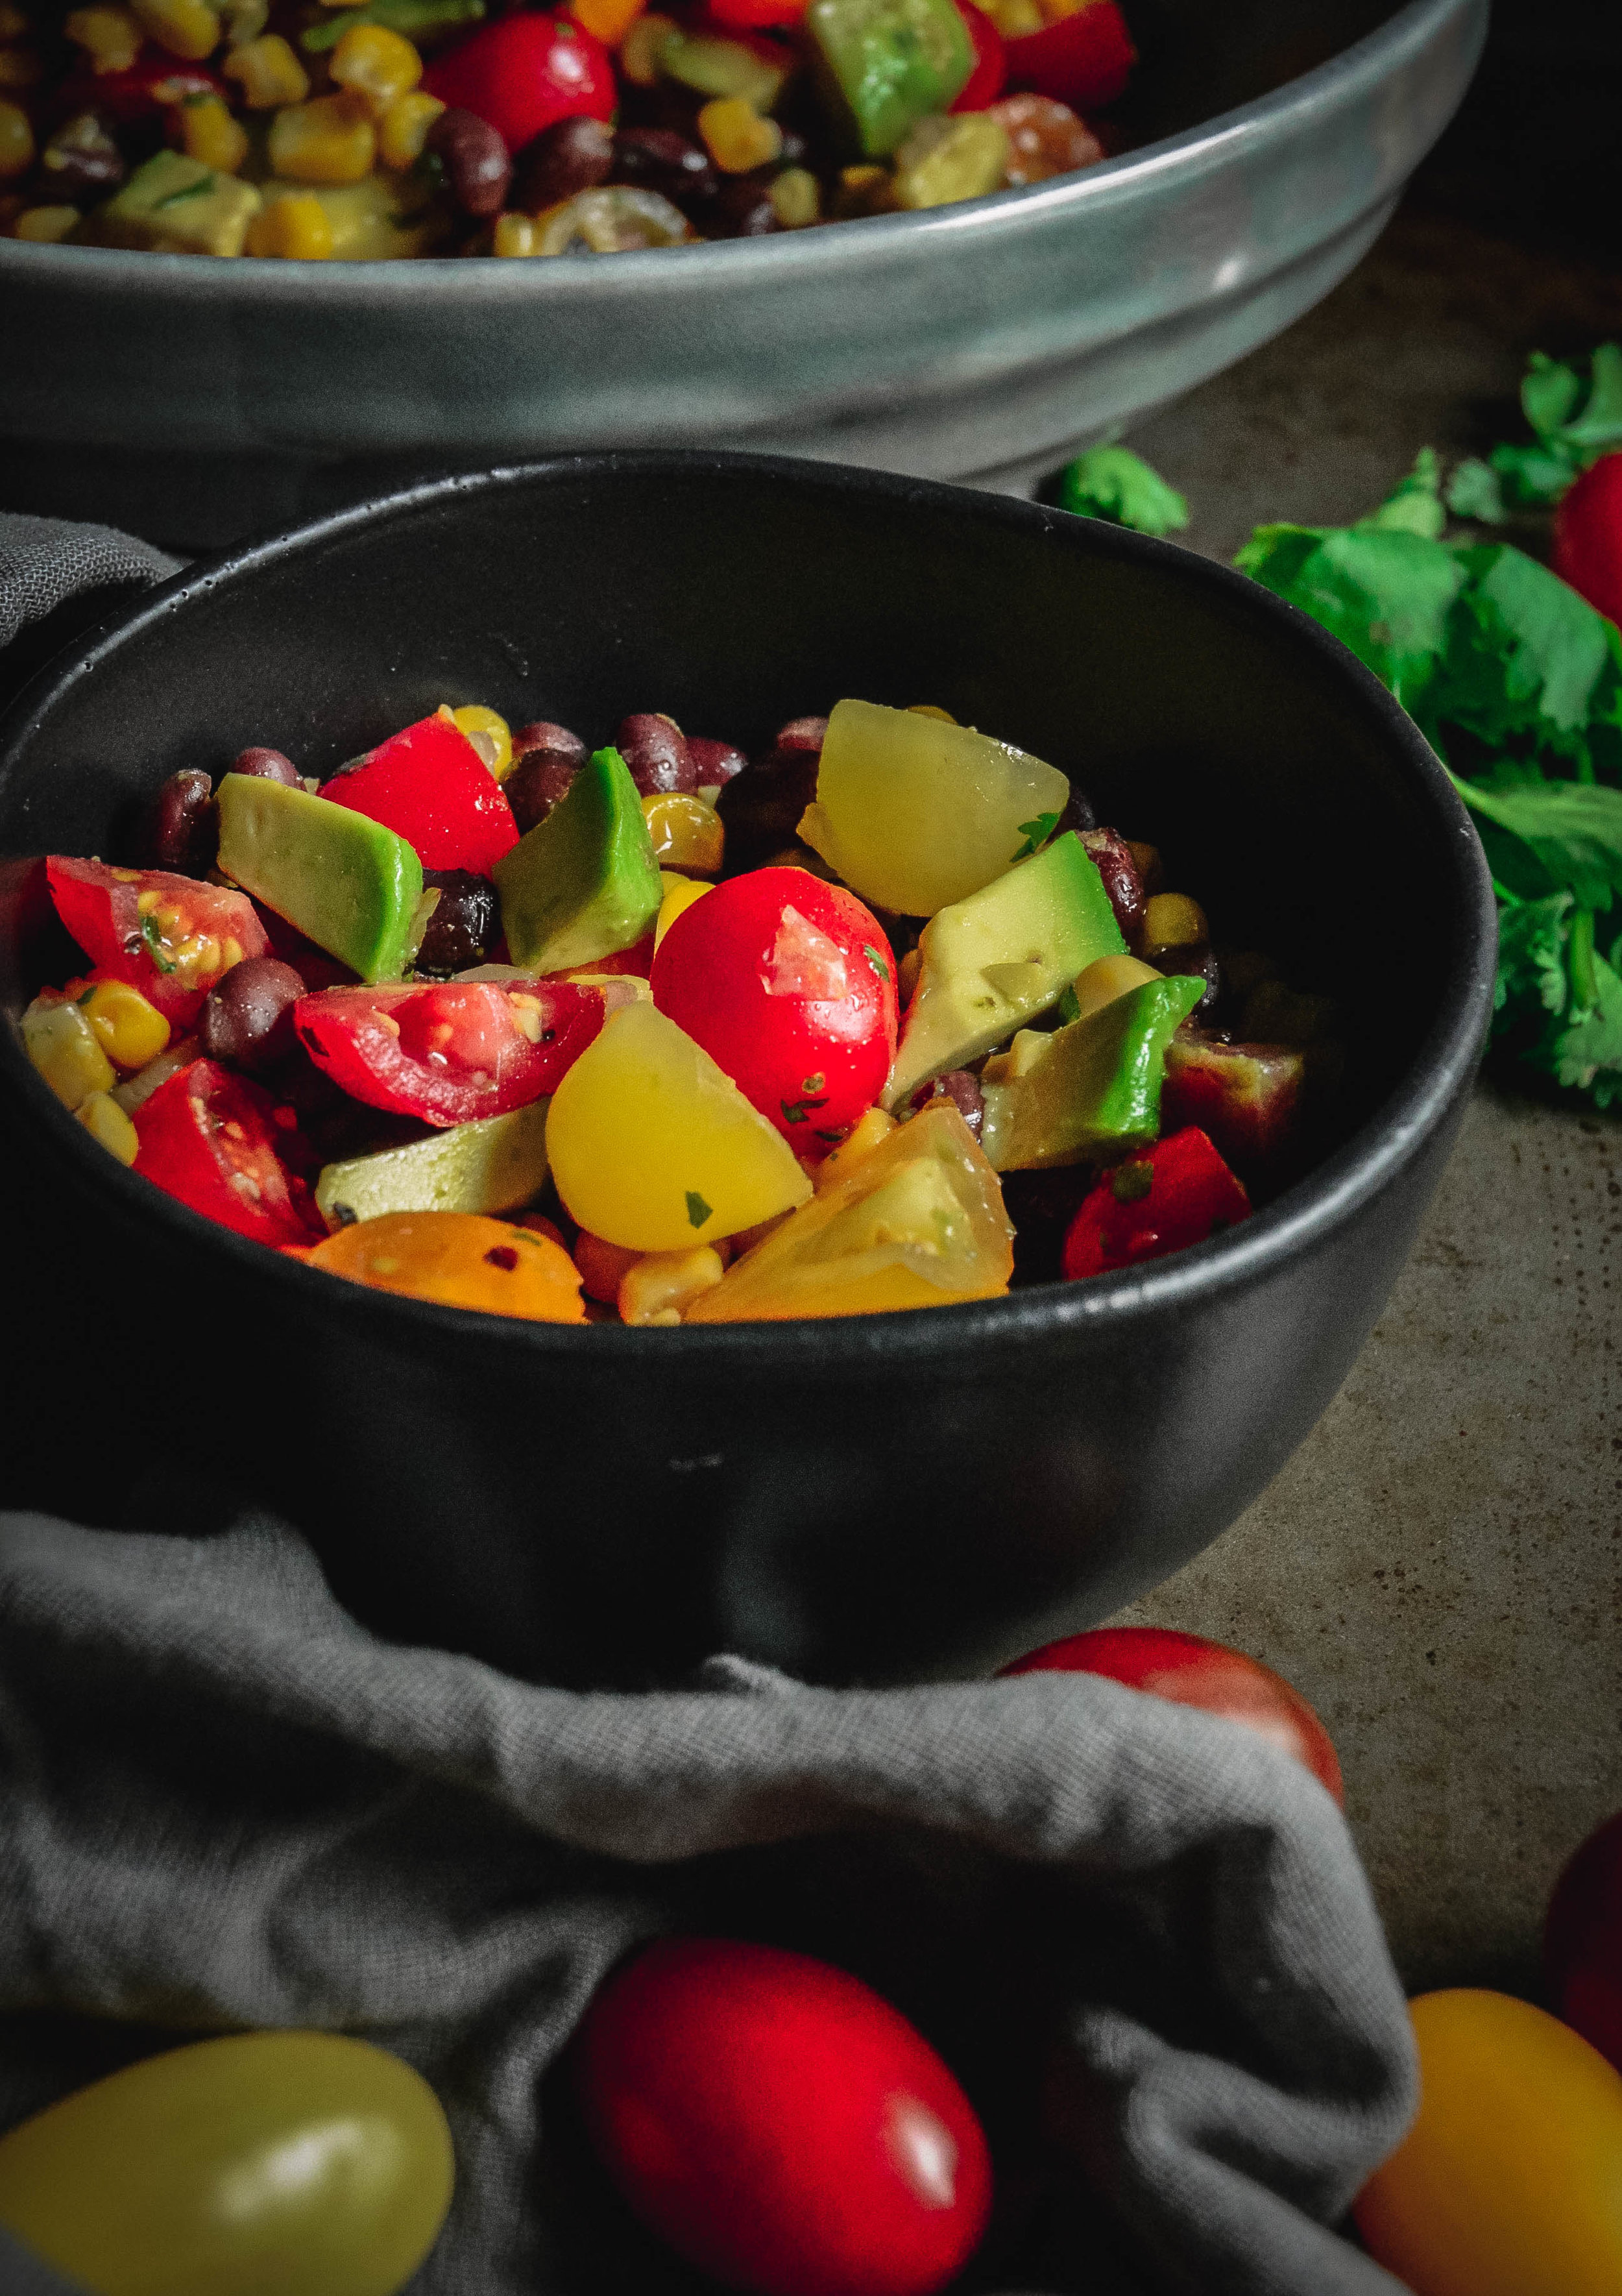 tomato salad with black beans, corn and avocado